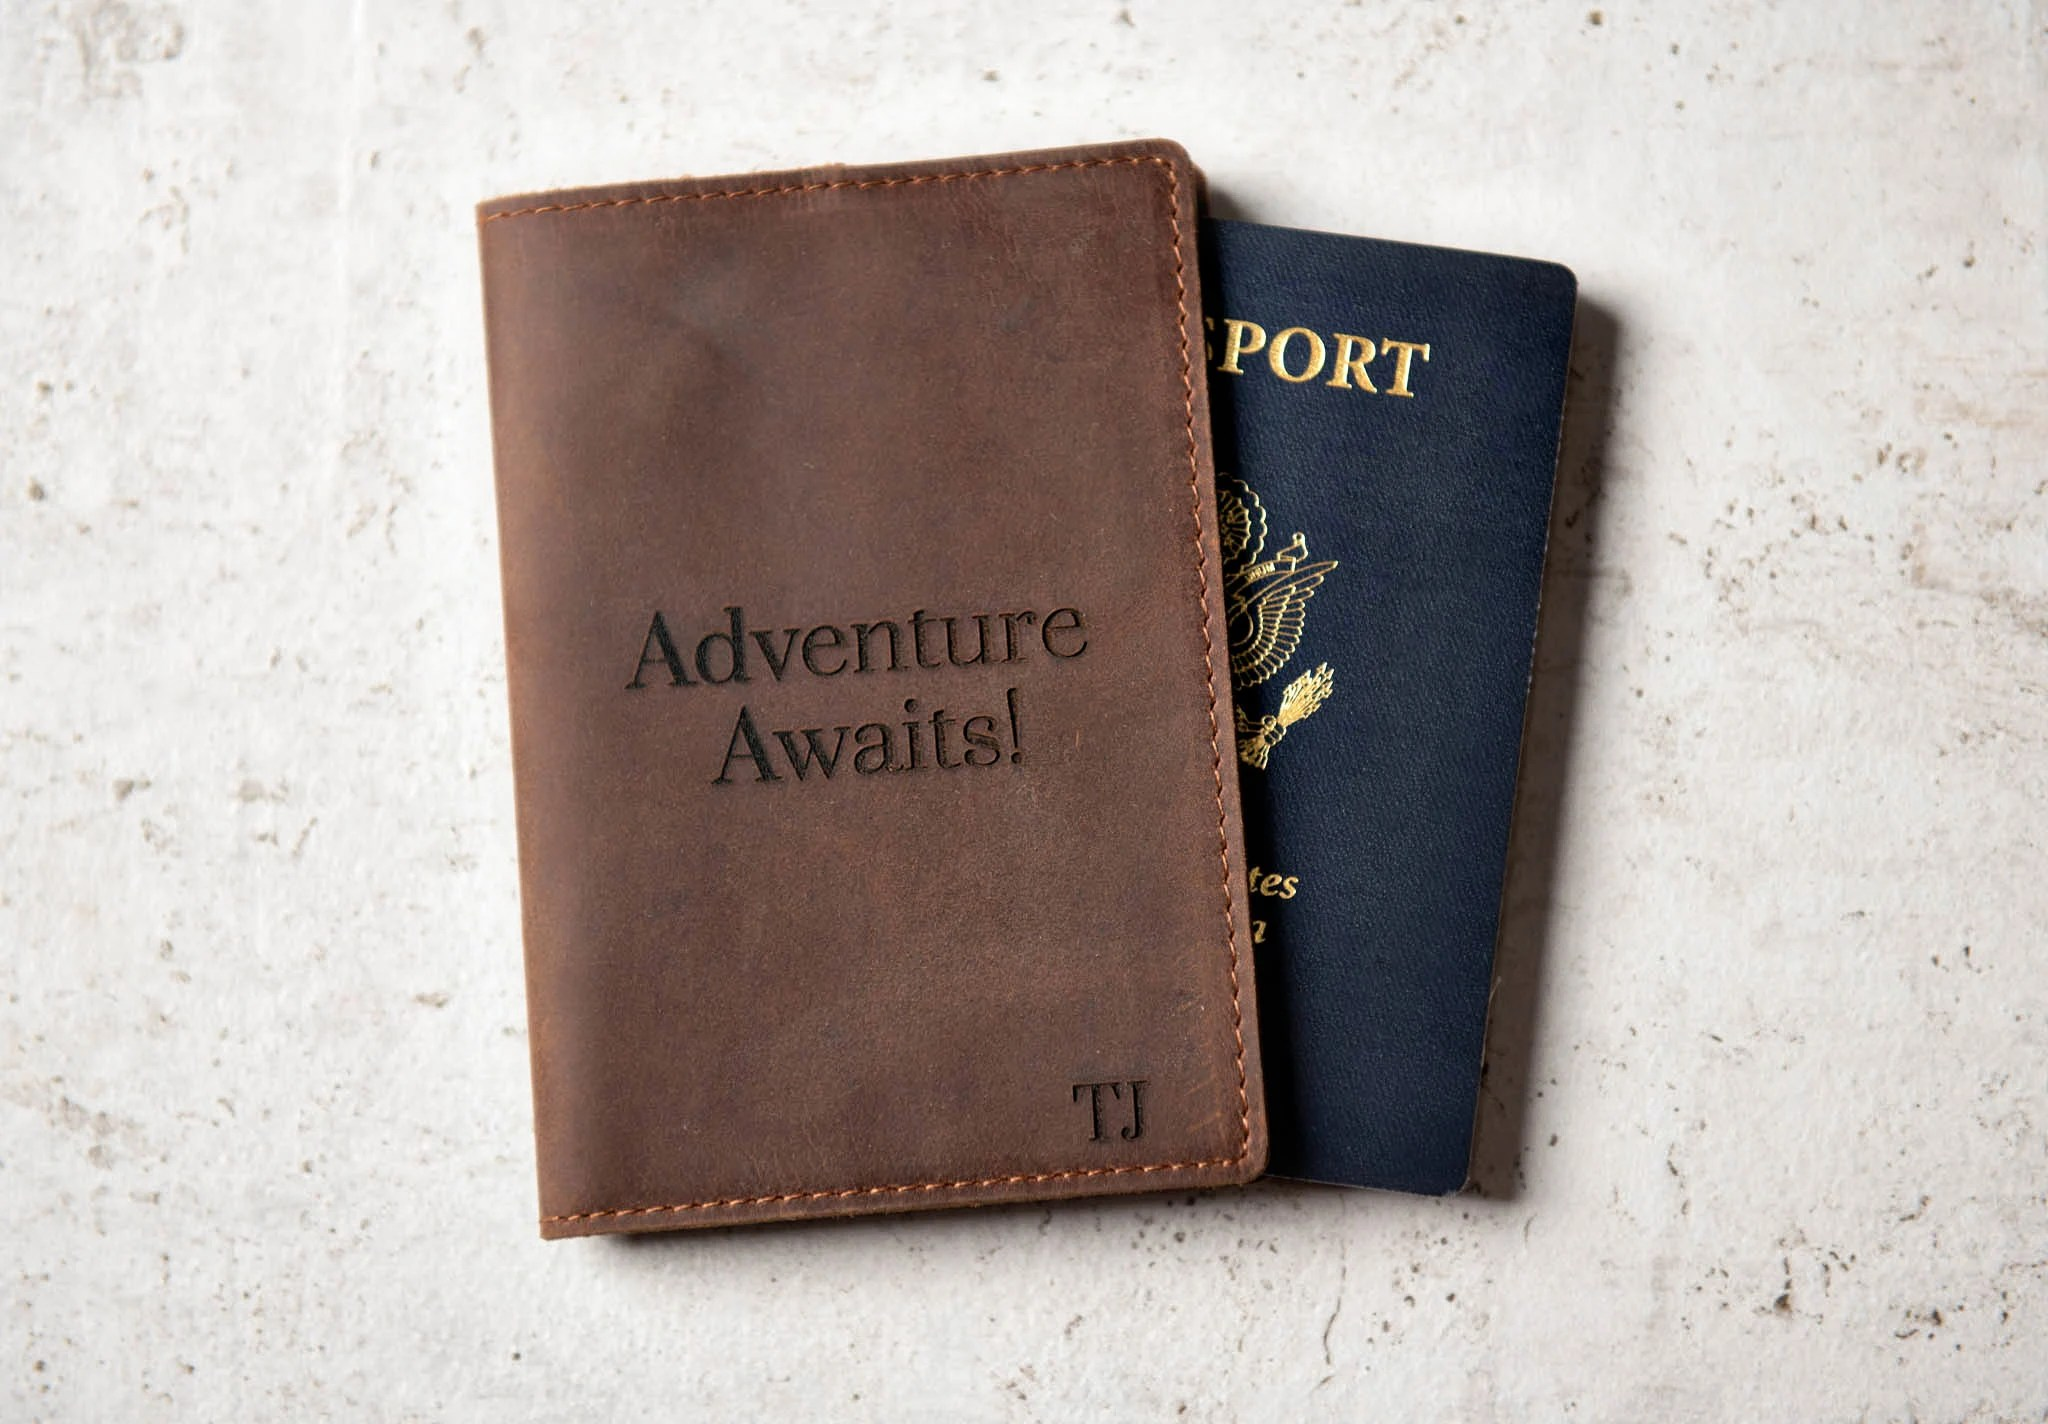 Personalized Leather Passport Cover Holder by Left Coast image 6